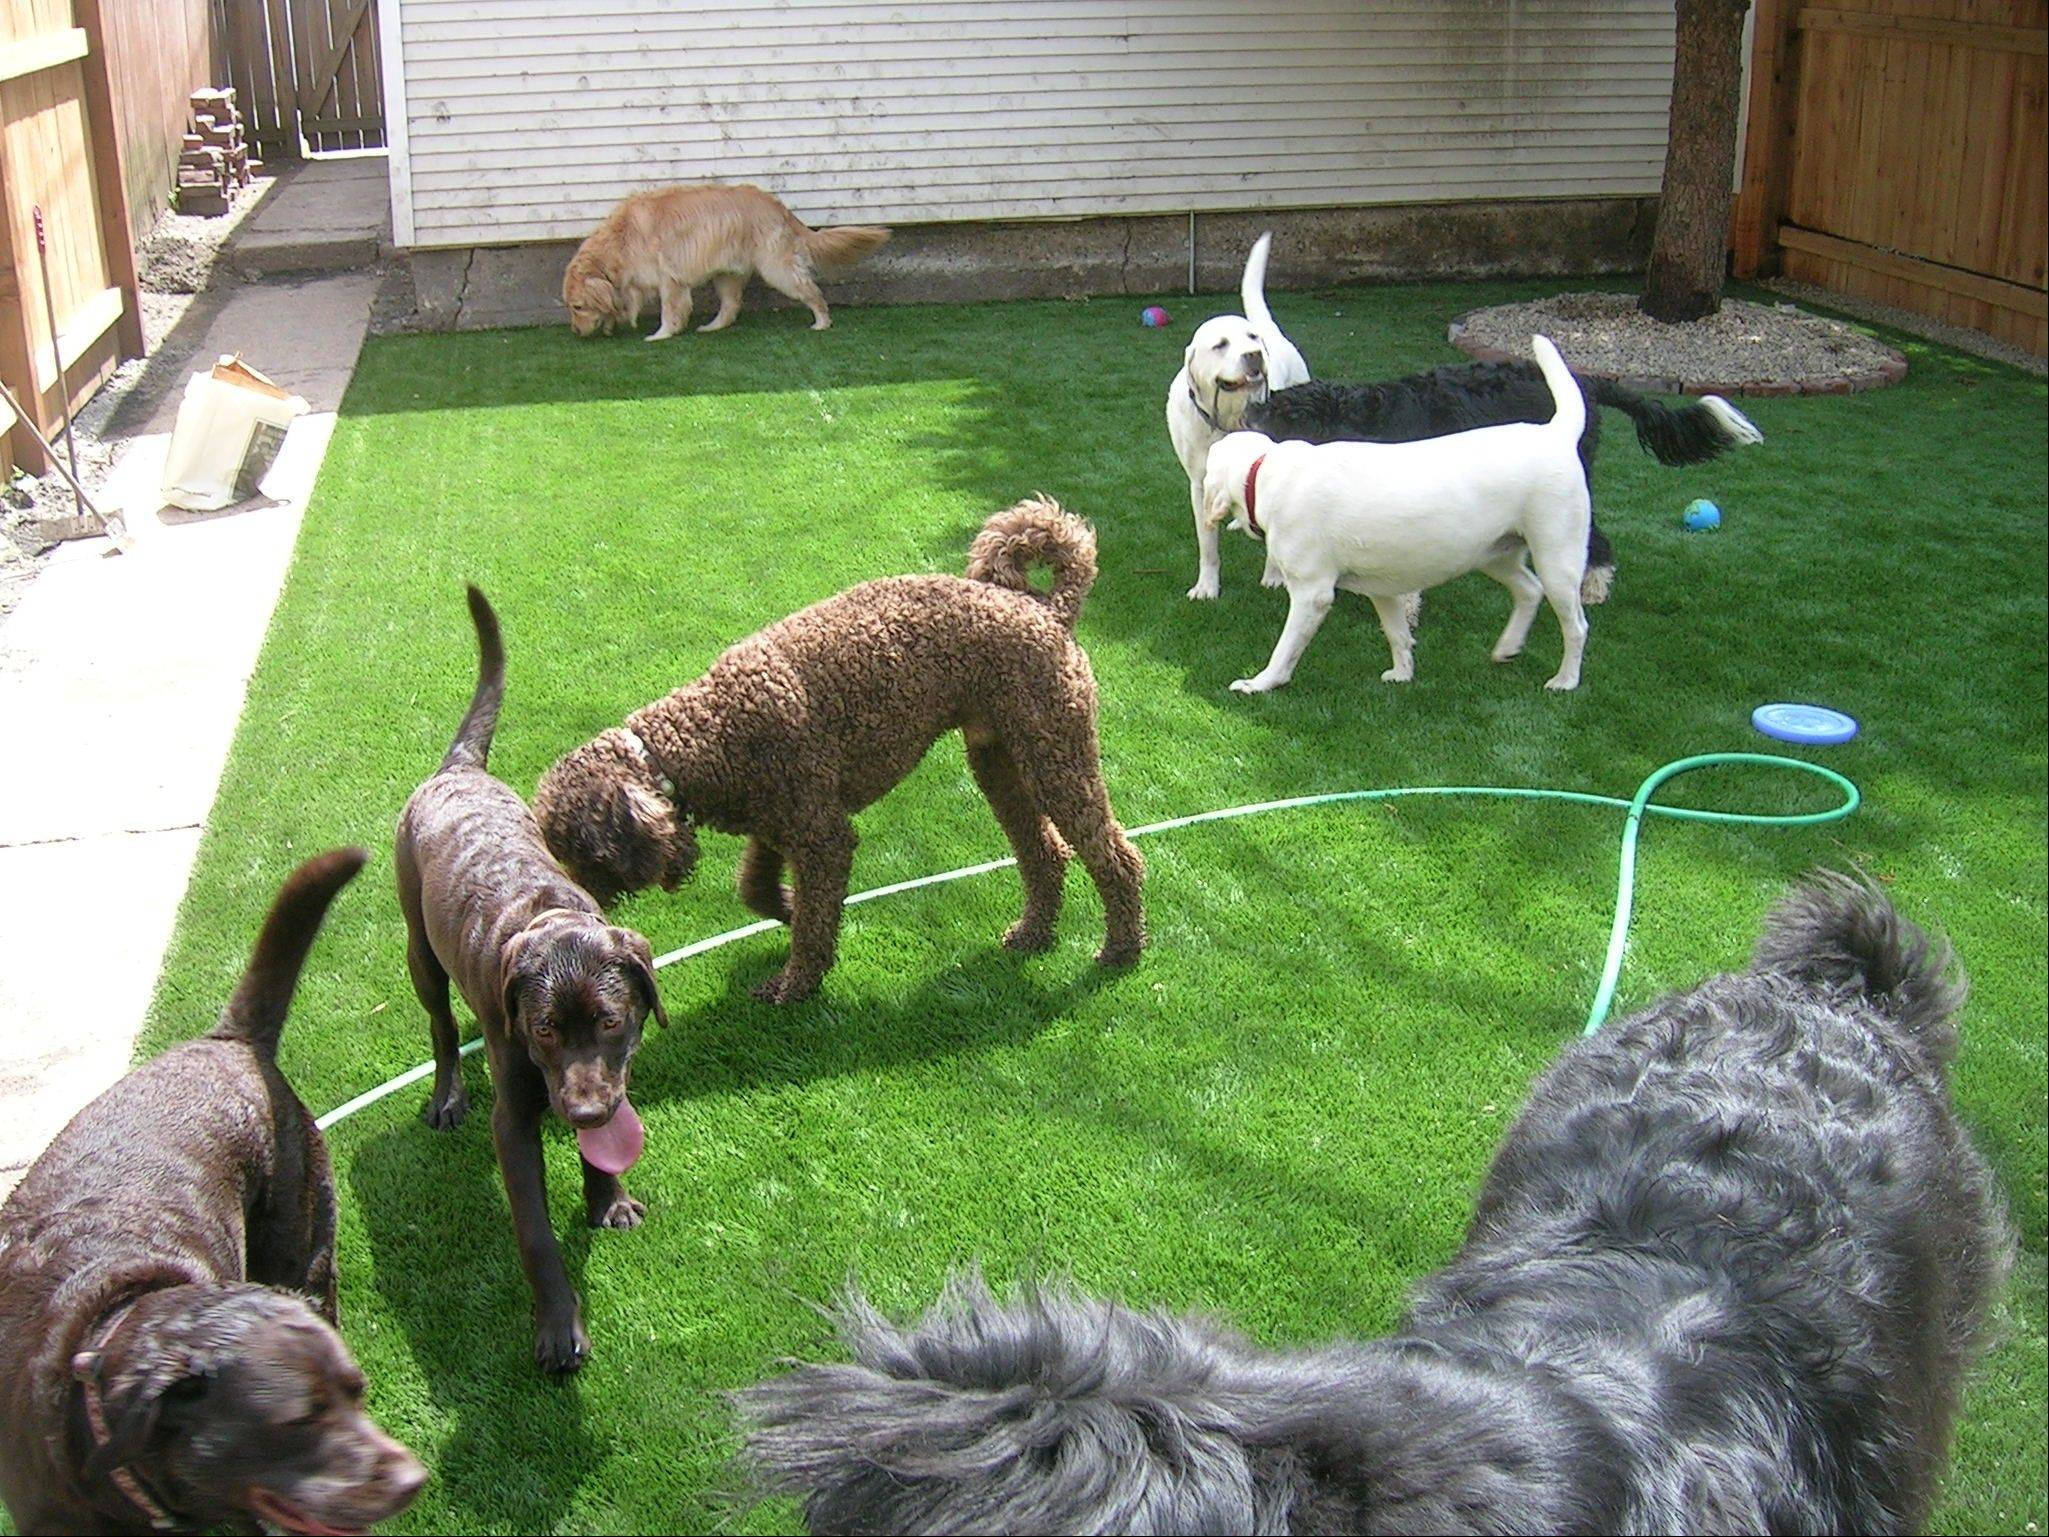 FieldTurf, an artificial turf gaining ground in home use, is particularly good for pet areas and is becoming popular at kennels and pet day-care centers.